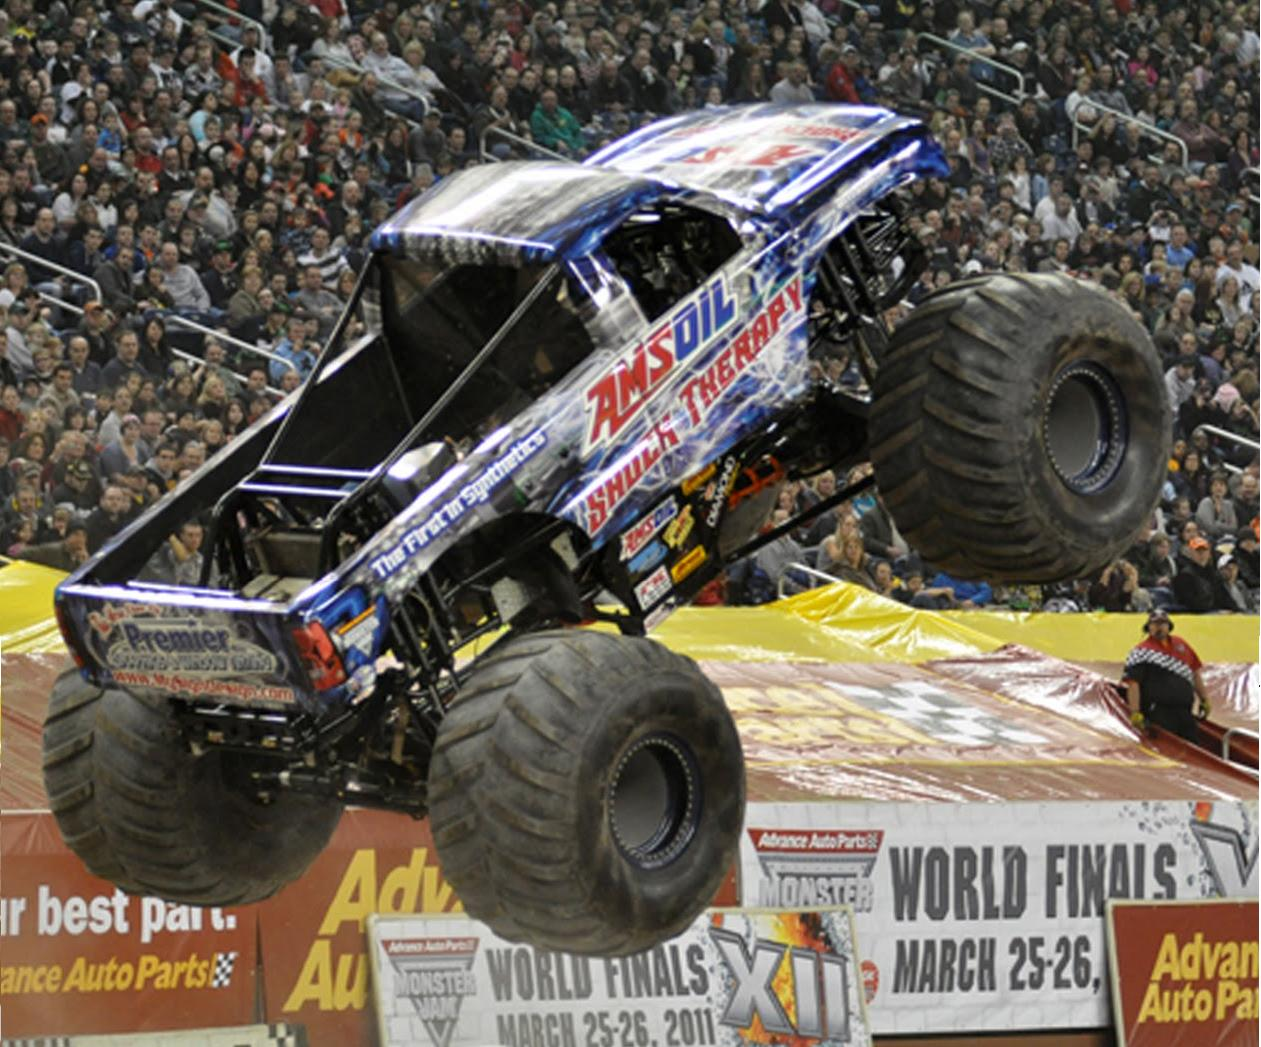 amsoil monster truck shocks entertainsracing ready racing ready the amateur racing. Black Bedroom Furniture Sets. Home Design Ideas